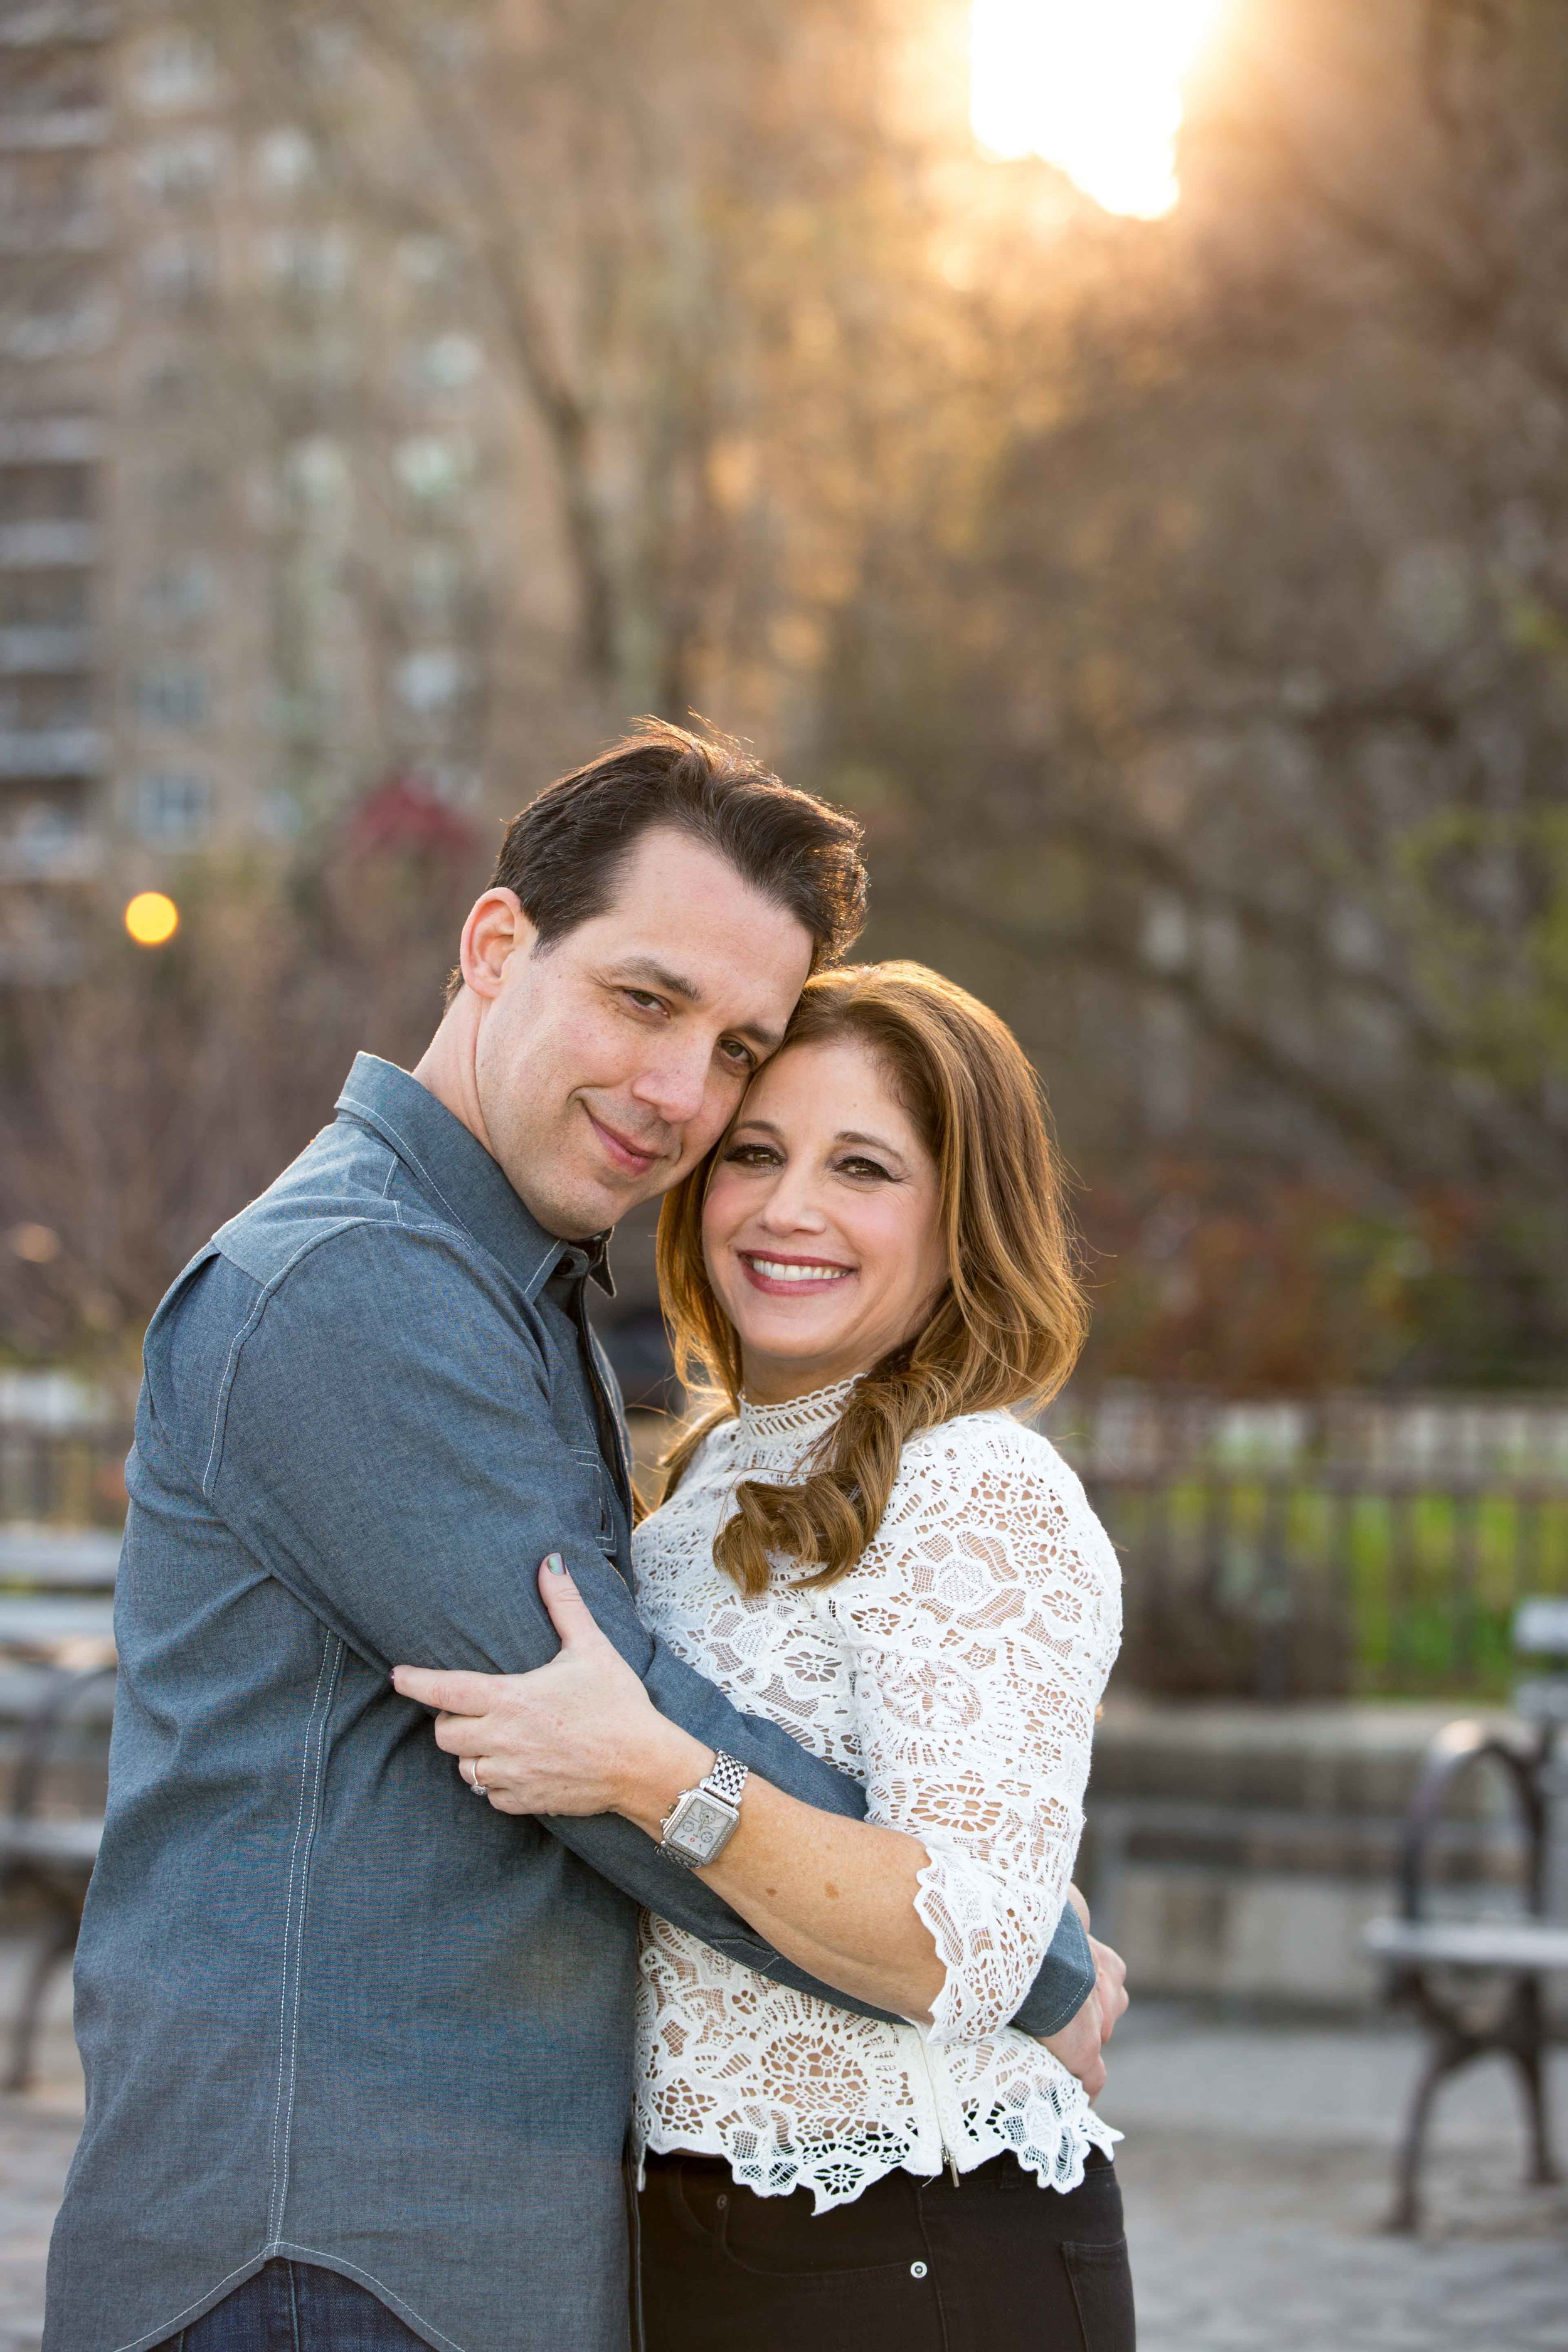 NYC Carl Schurz Park Engagement Photo Shoot Session 1.jpg